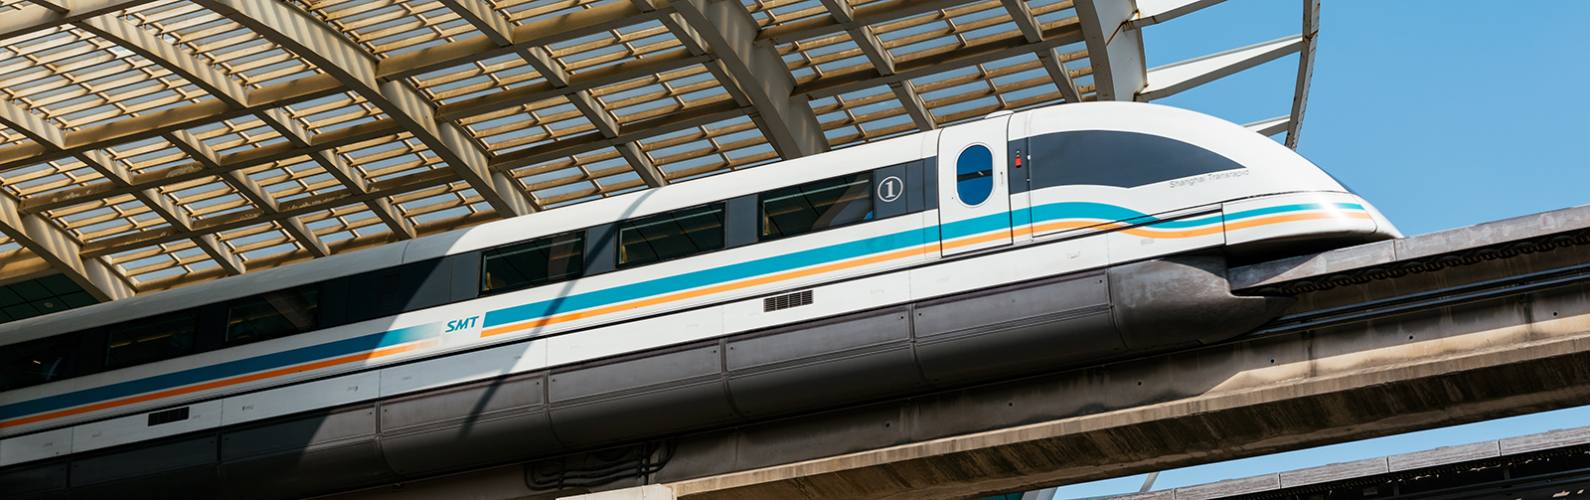 New fastest passenger train can top 310mph! But how?